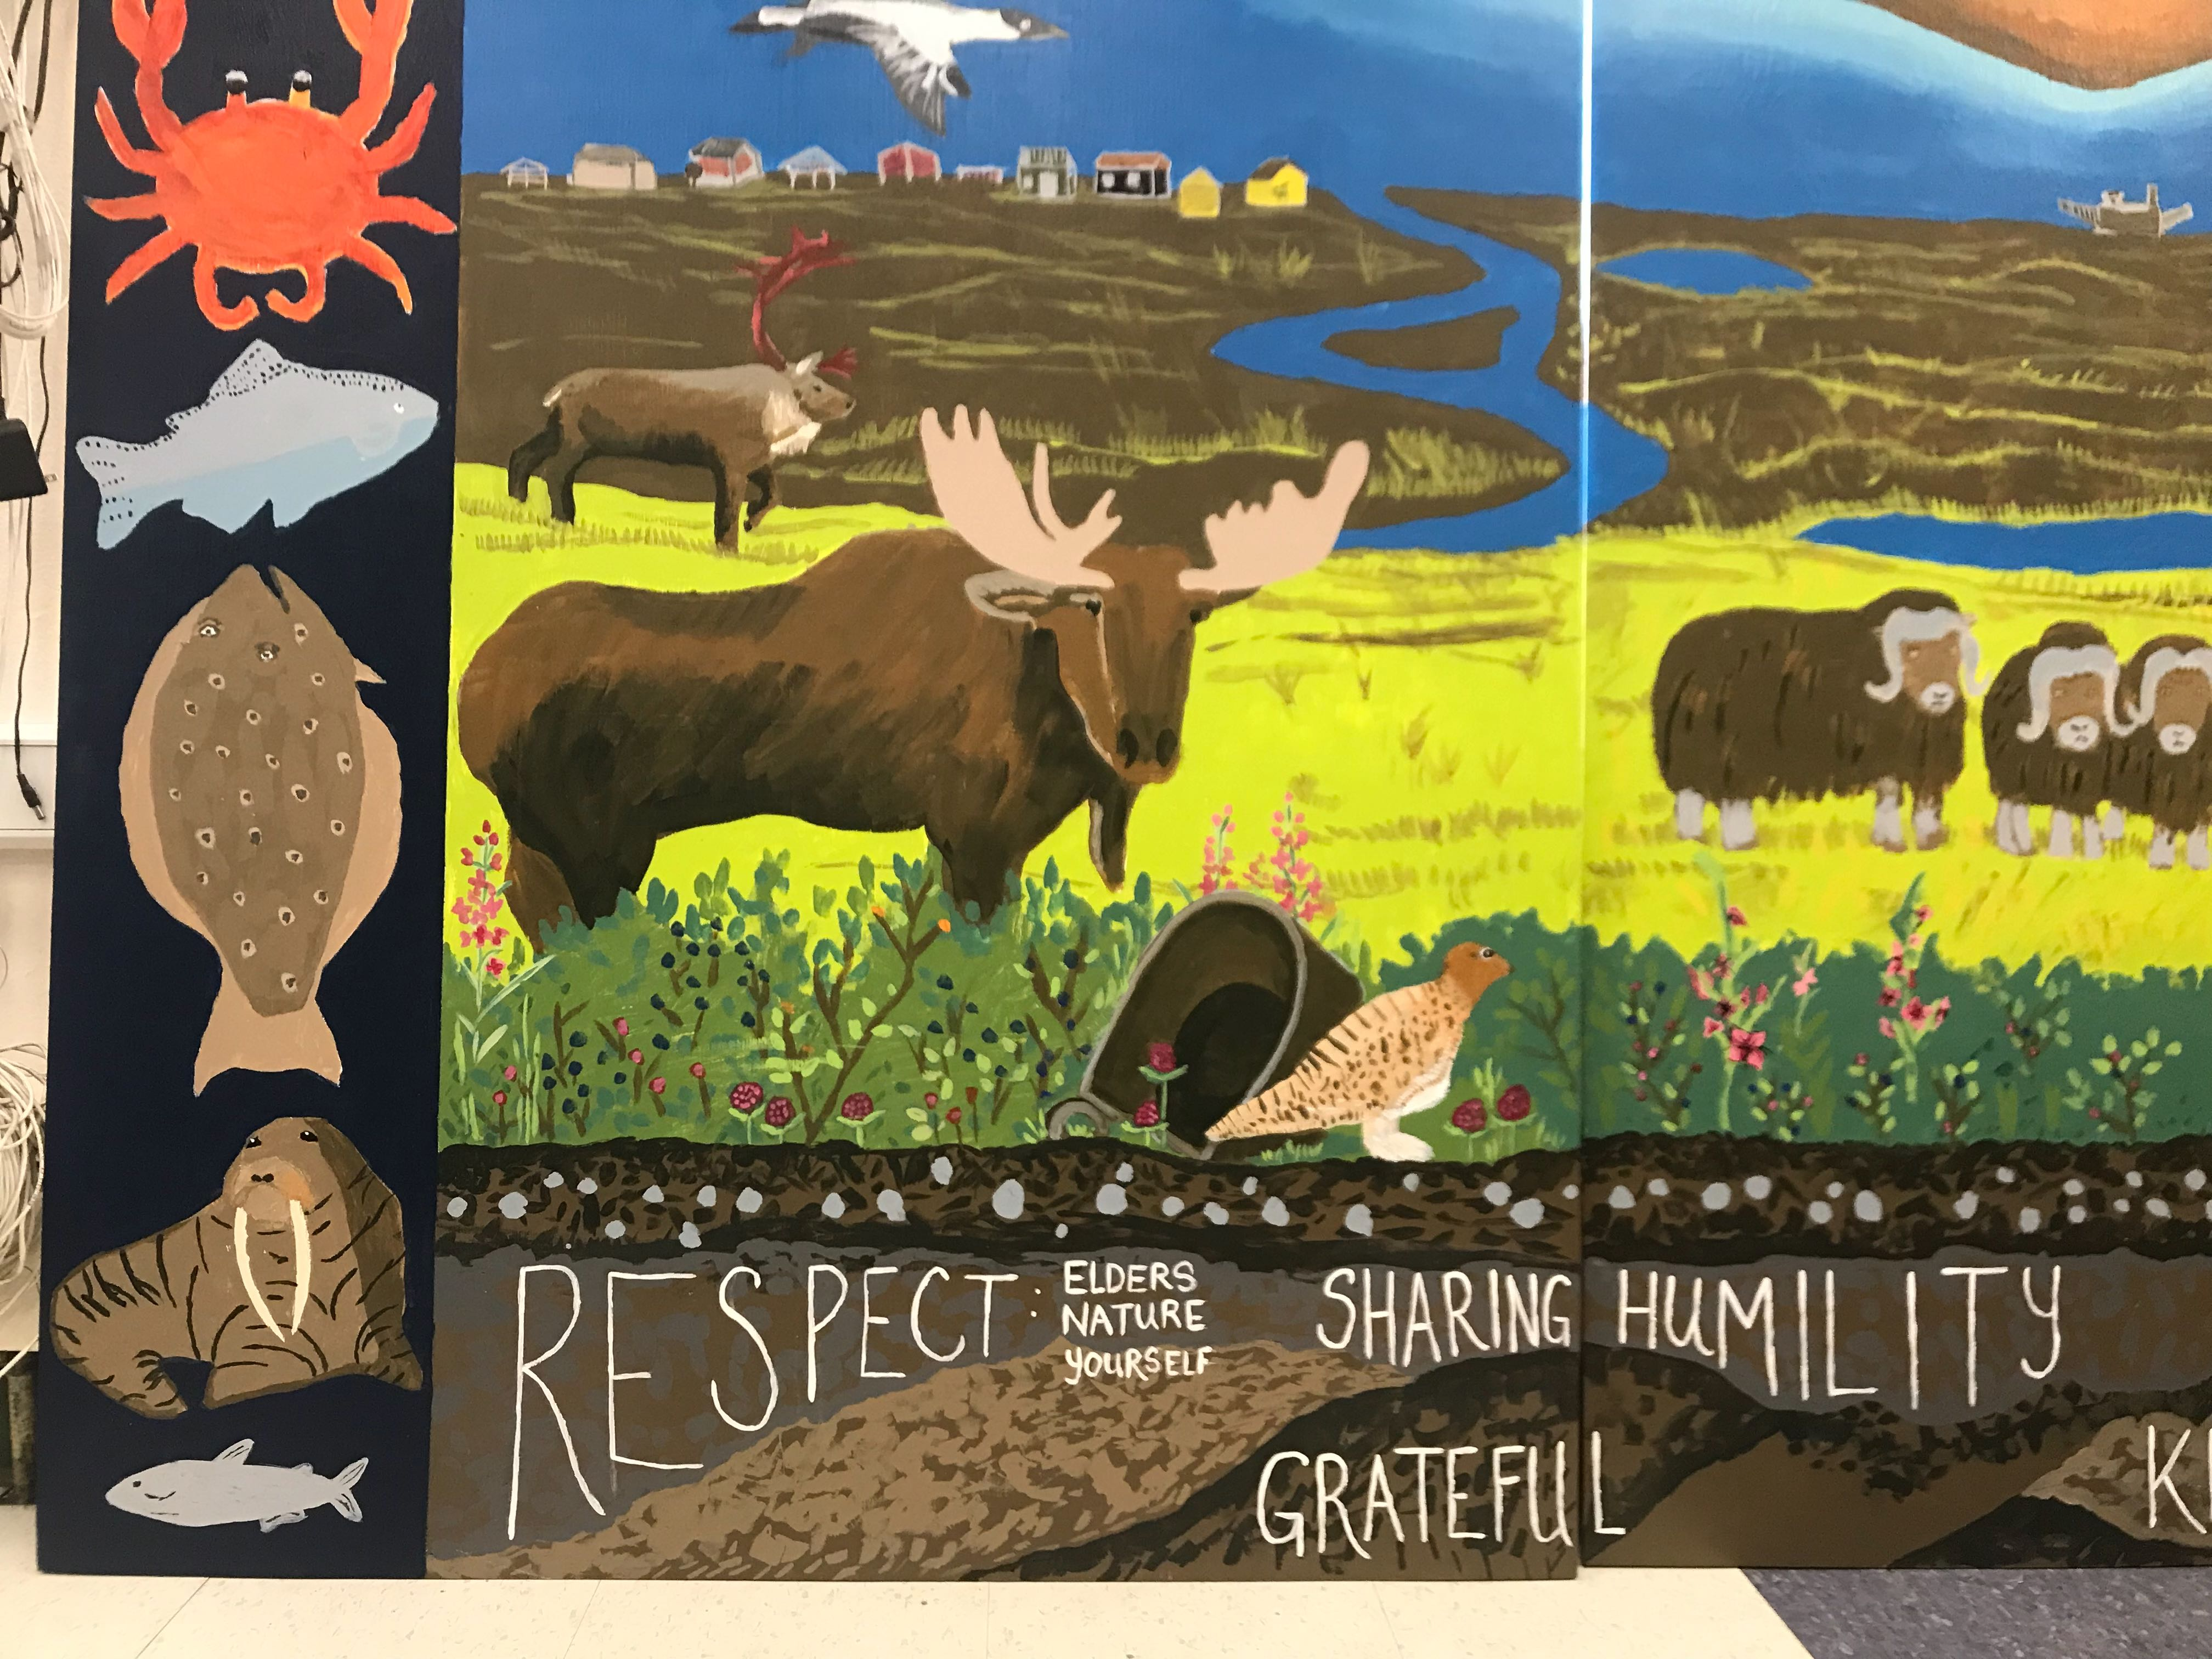 With Visiting Artist at Their Side, Nome Students Paint Mural Inspired by Their Hometown